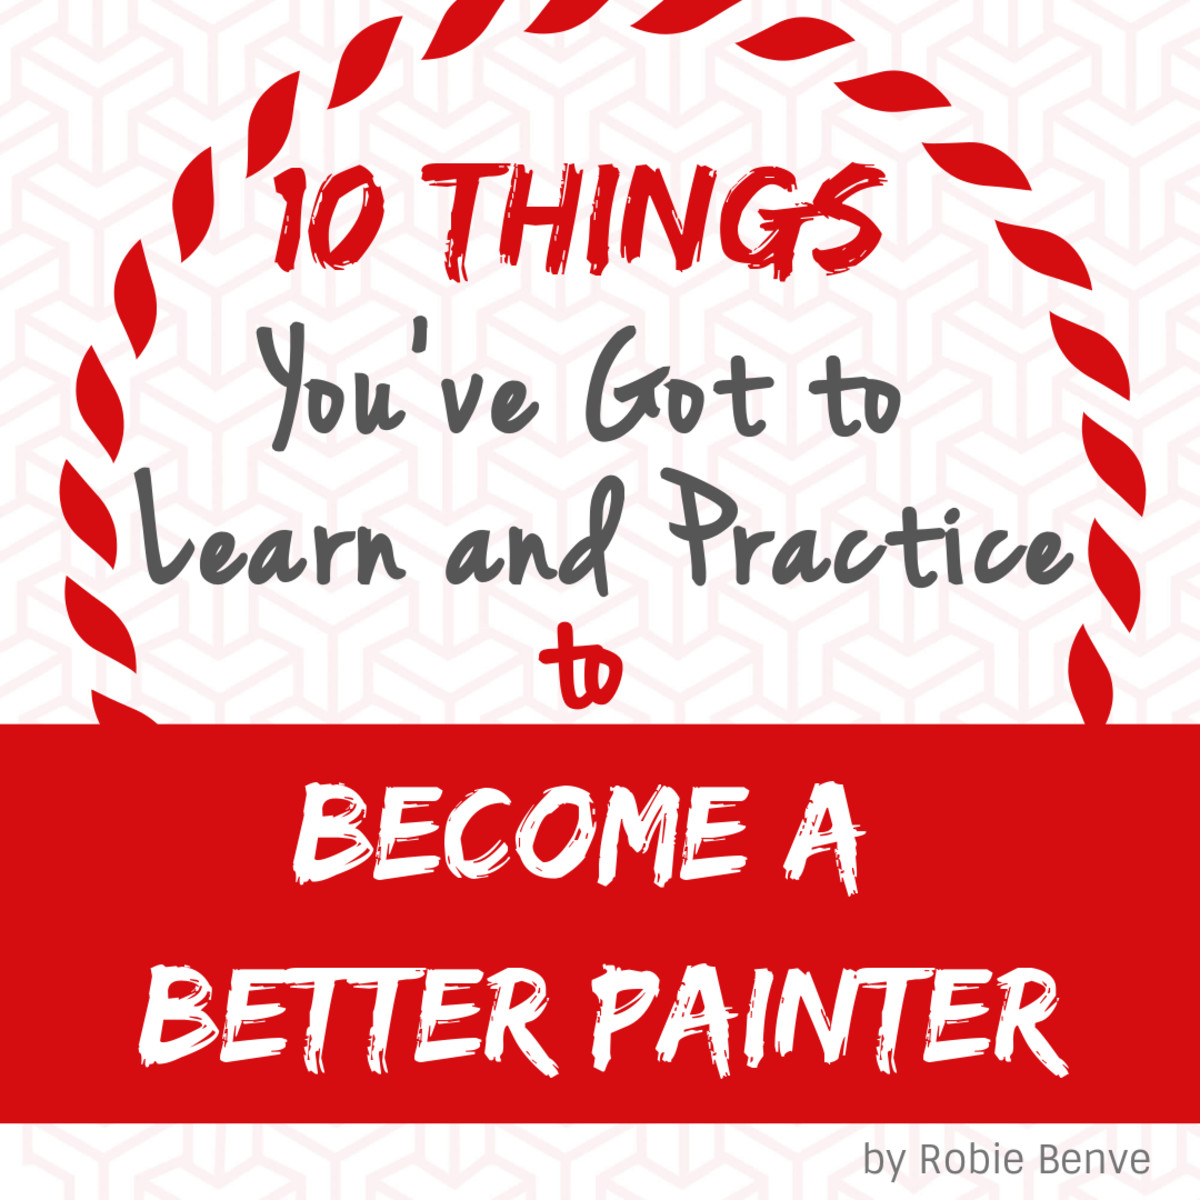 This article provides several tips that I wish someone had told me when I first started painting. Instead, I had to figure them out on my own—often the hard way. You are welcome. :)